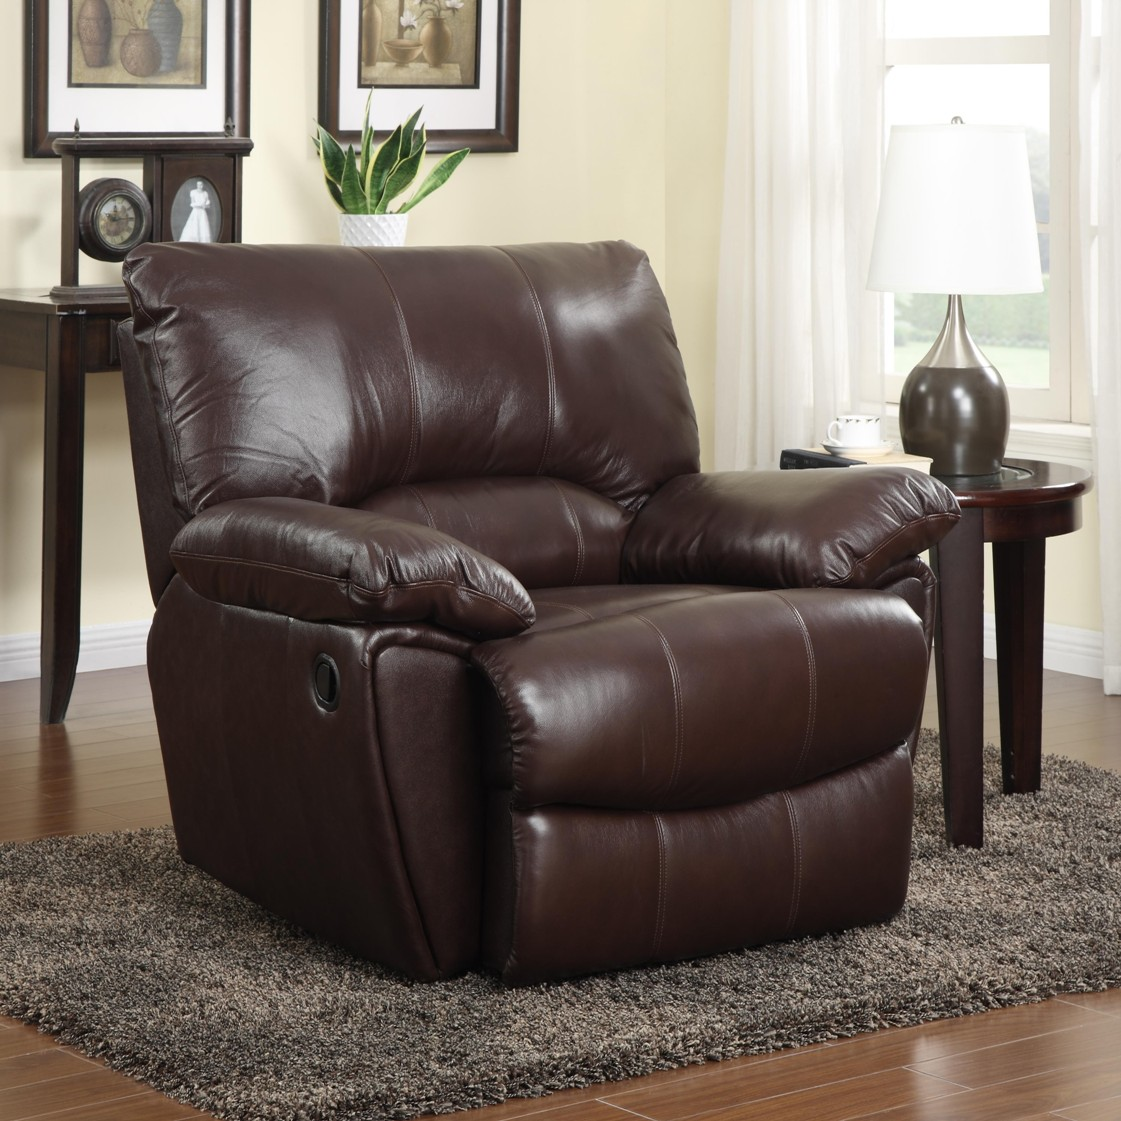 Coaster Motion Recliner